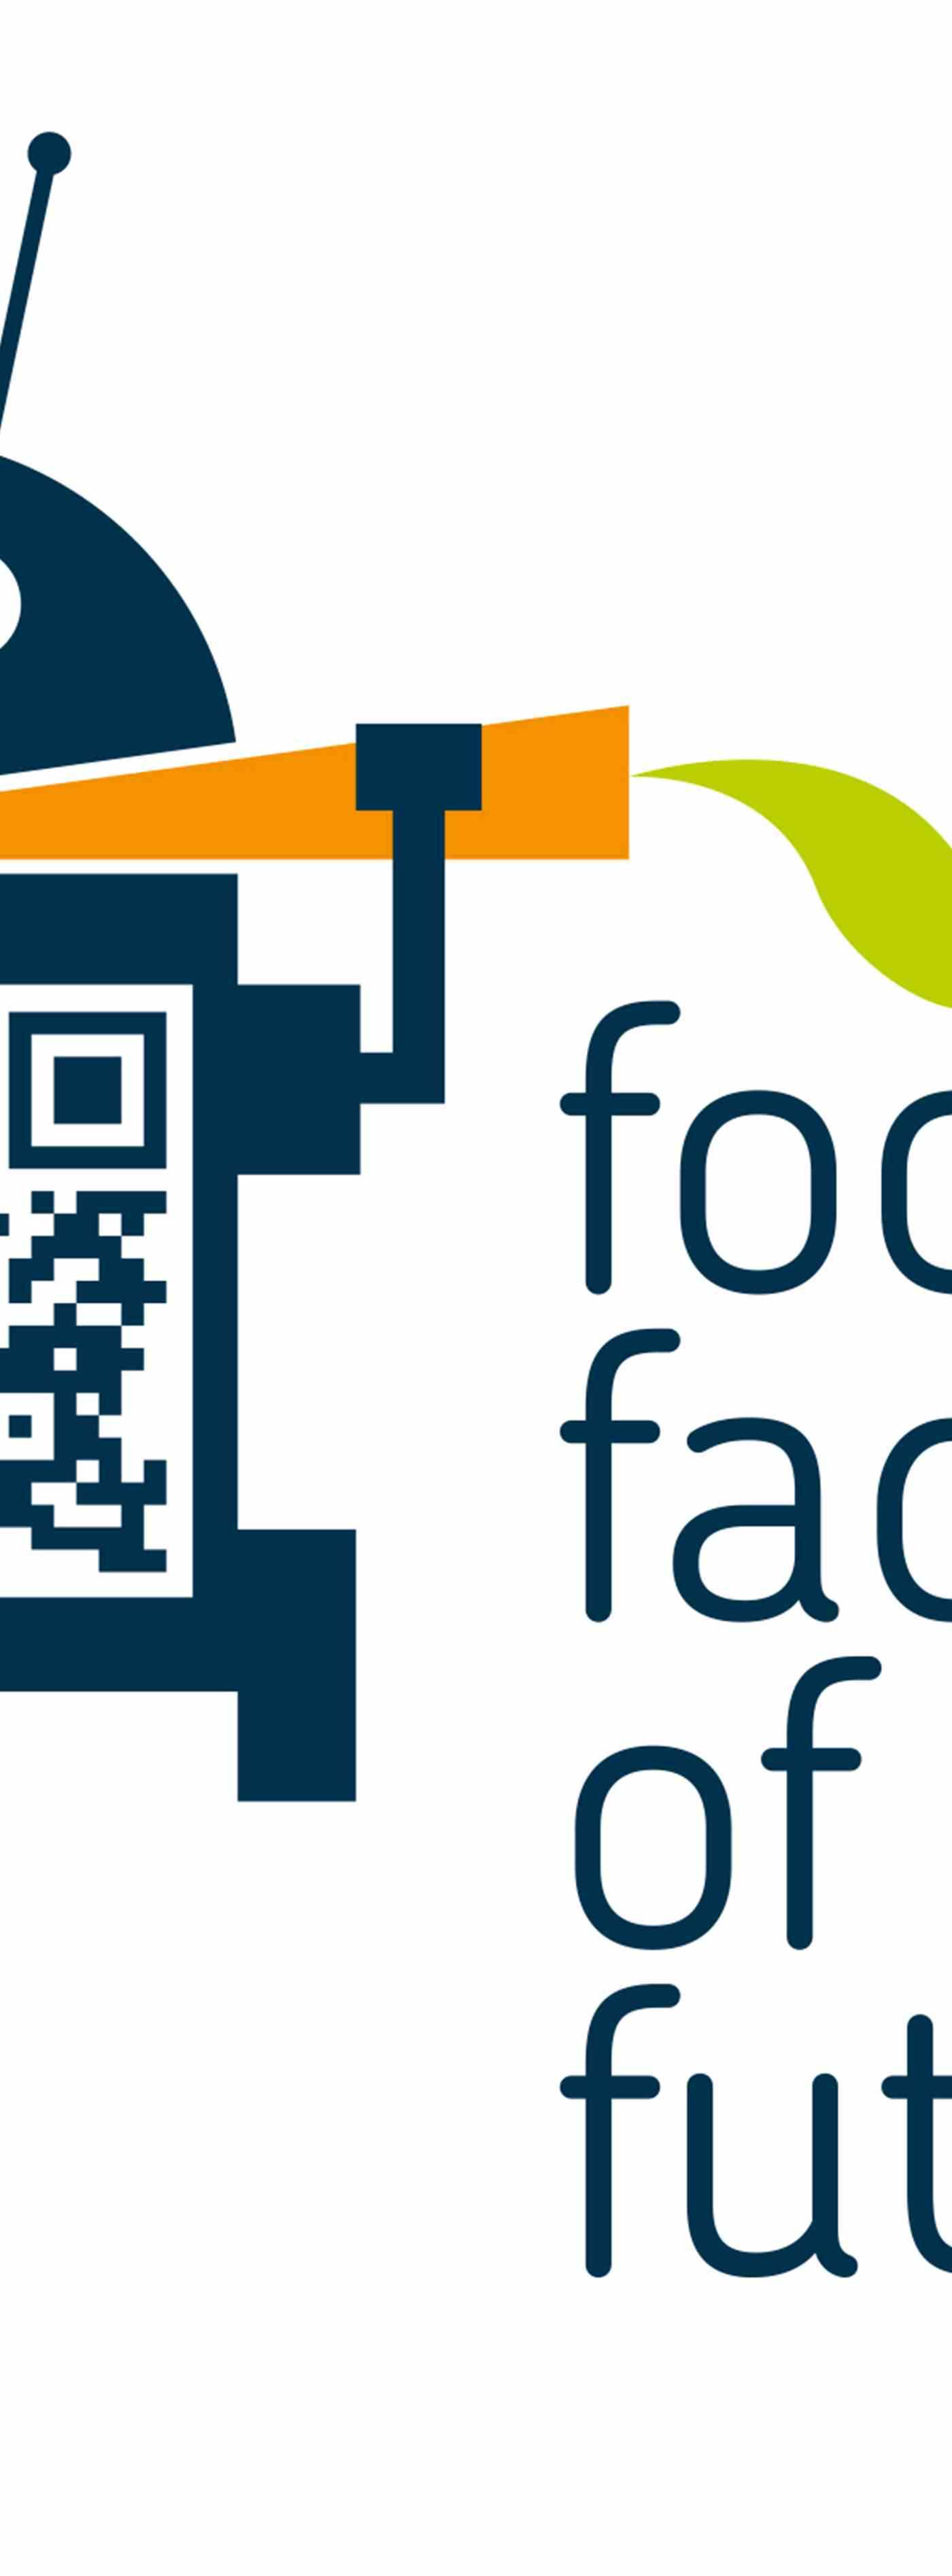 Logo Food Factory of the Future